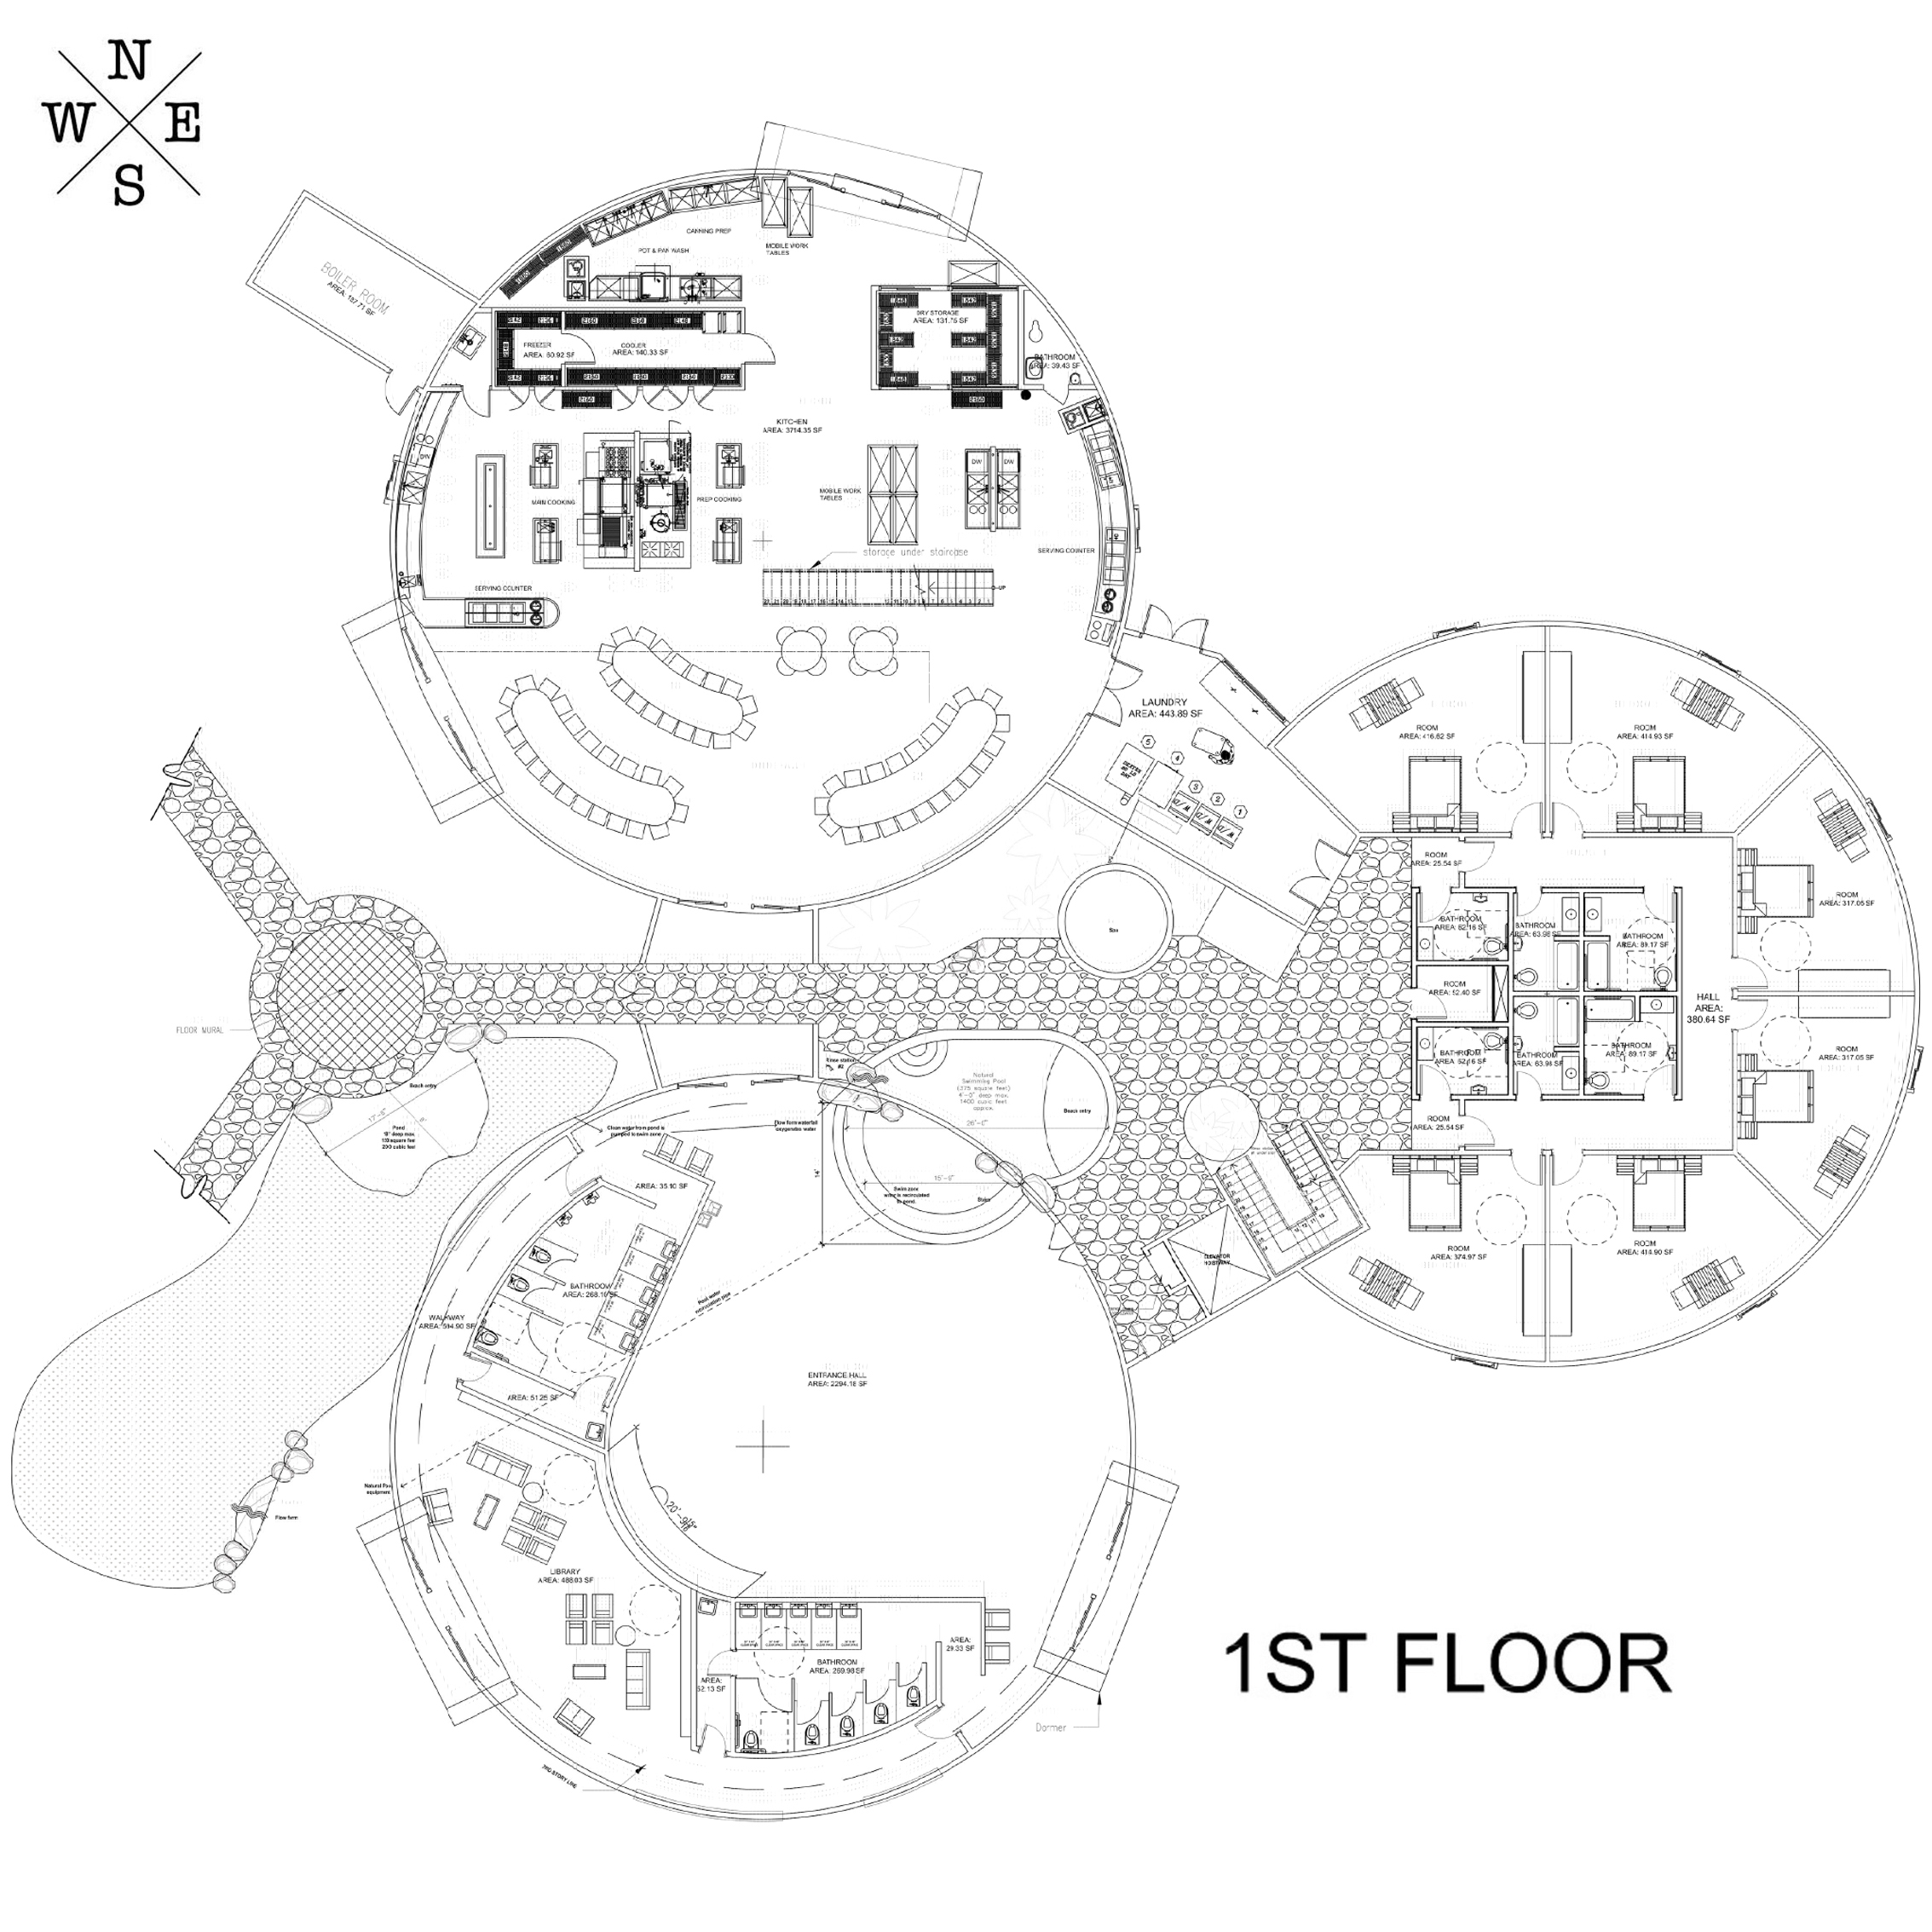 Basic Dome Home S Interior Plans: Open Source LEED Platinum Eco